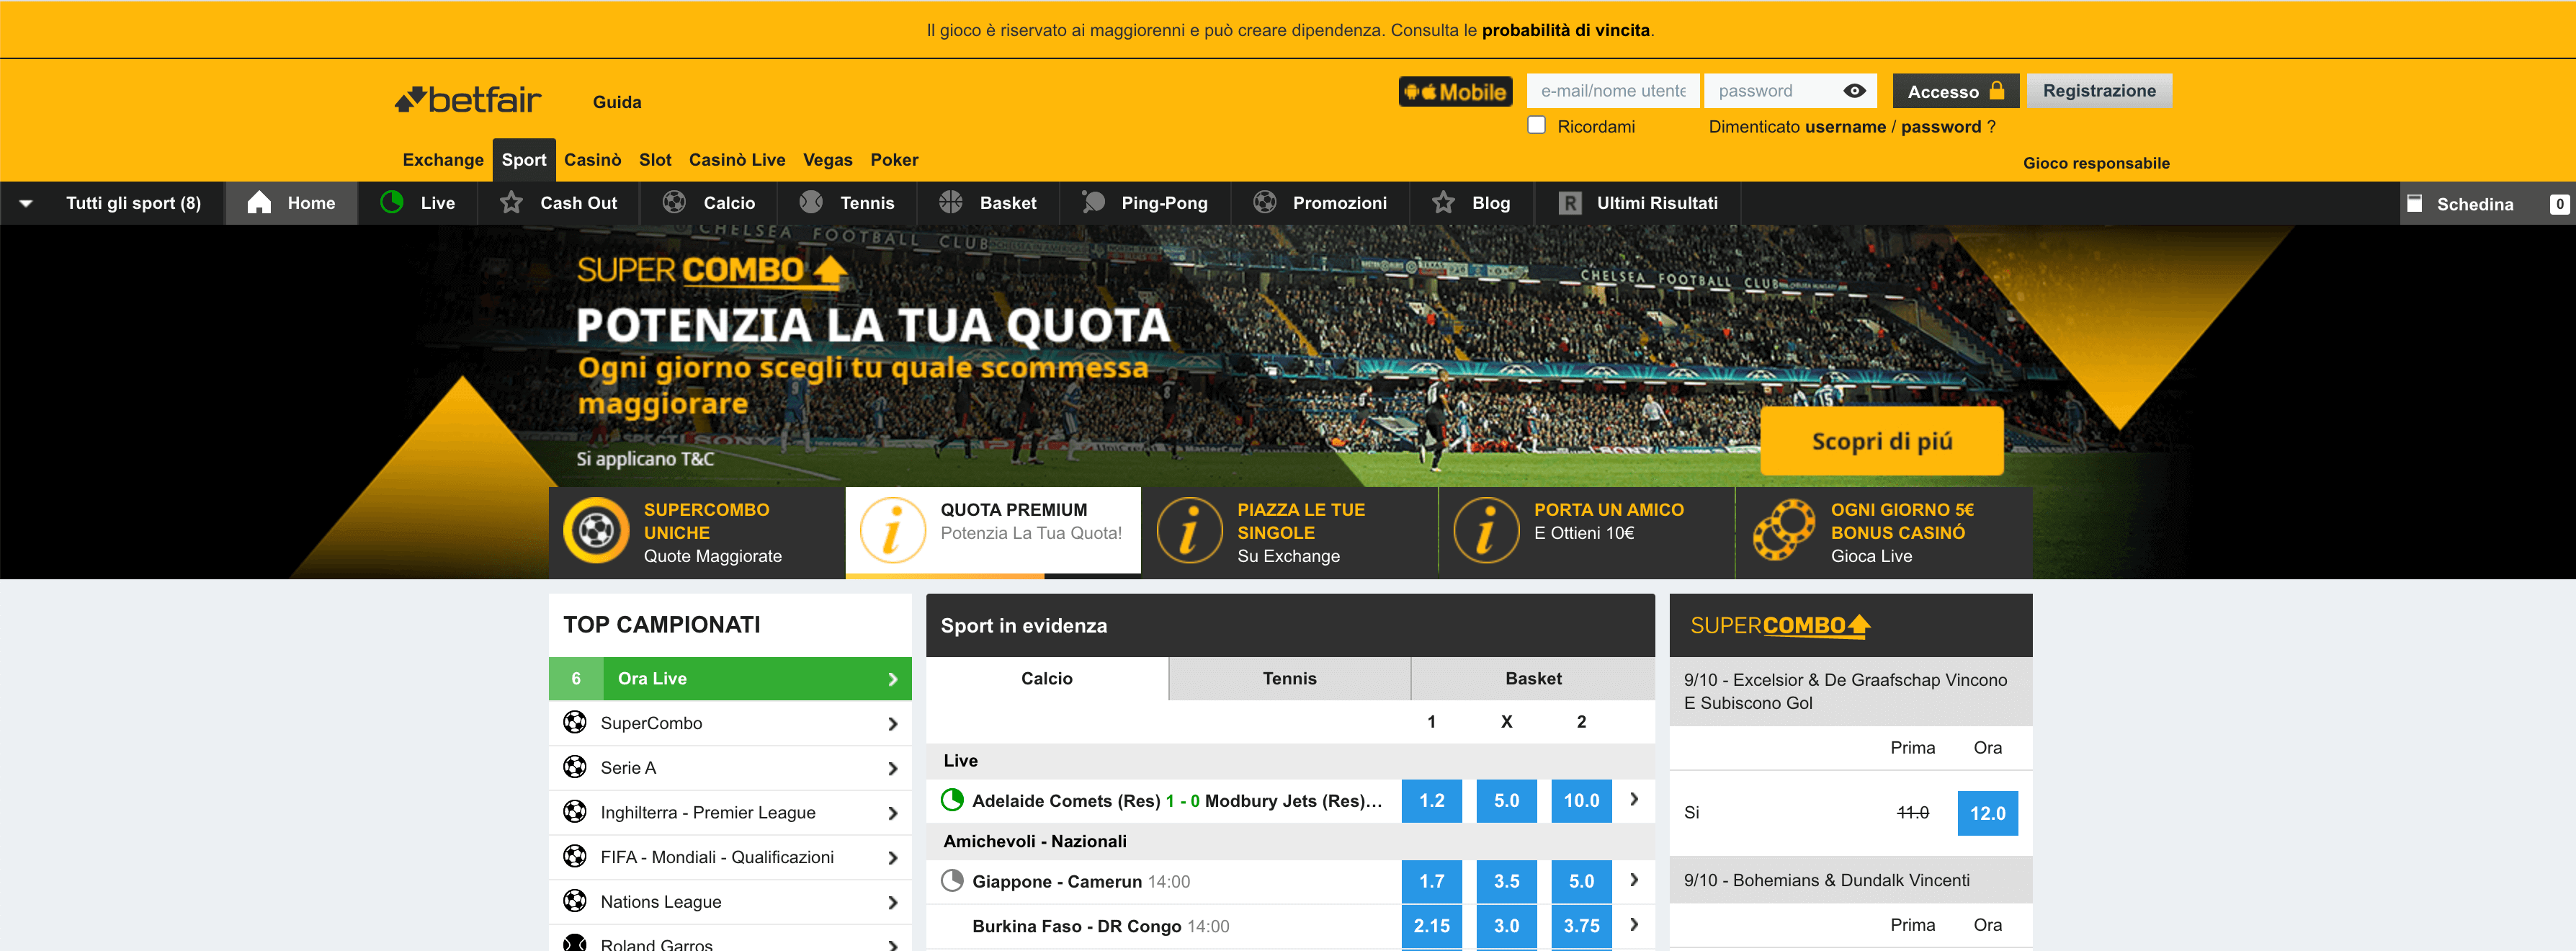 betfair calcio